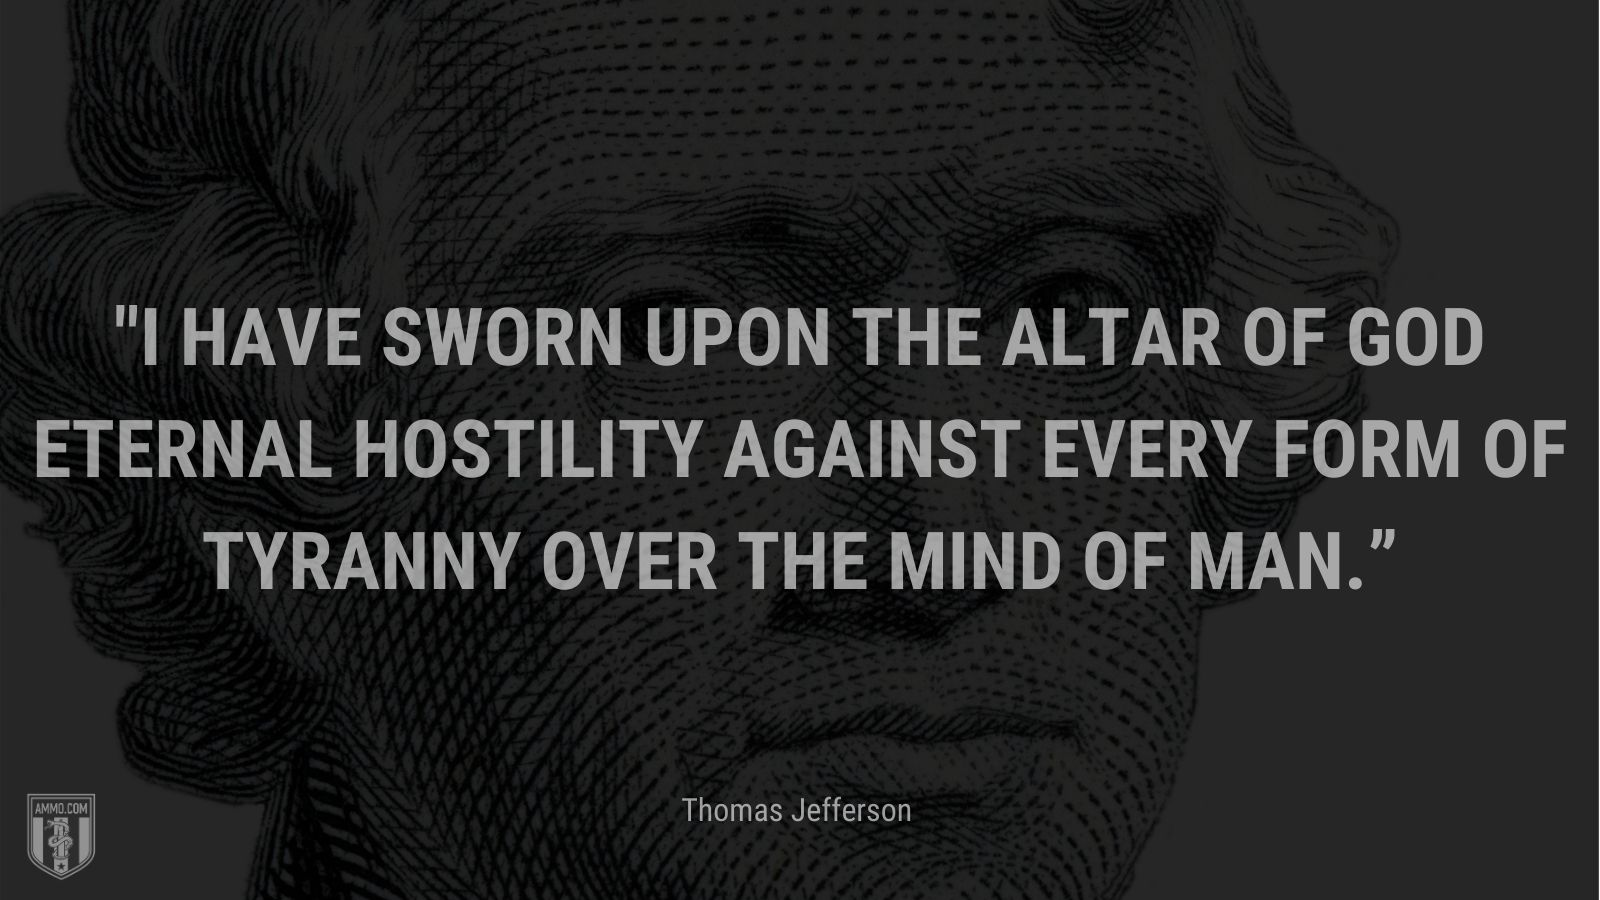 """""""I have sworn upon the altar of God eternal hostility against every form of tyranny over the mind of man."""" - Thomas Jefferson"""